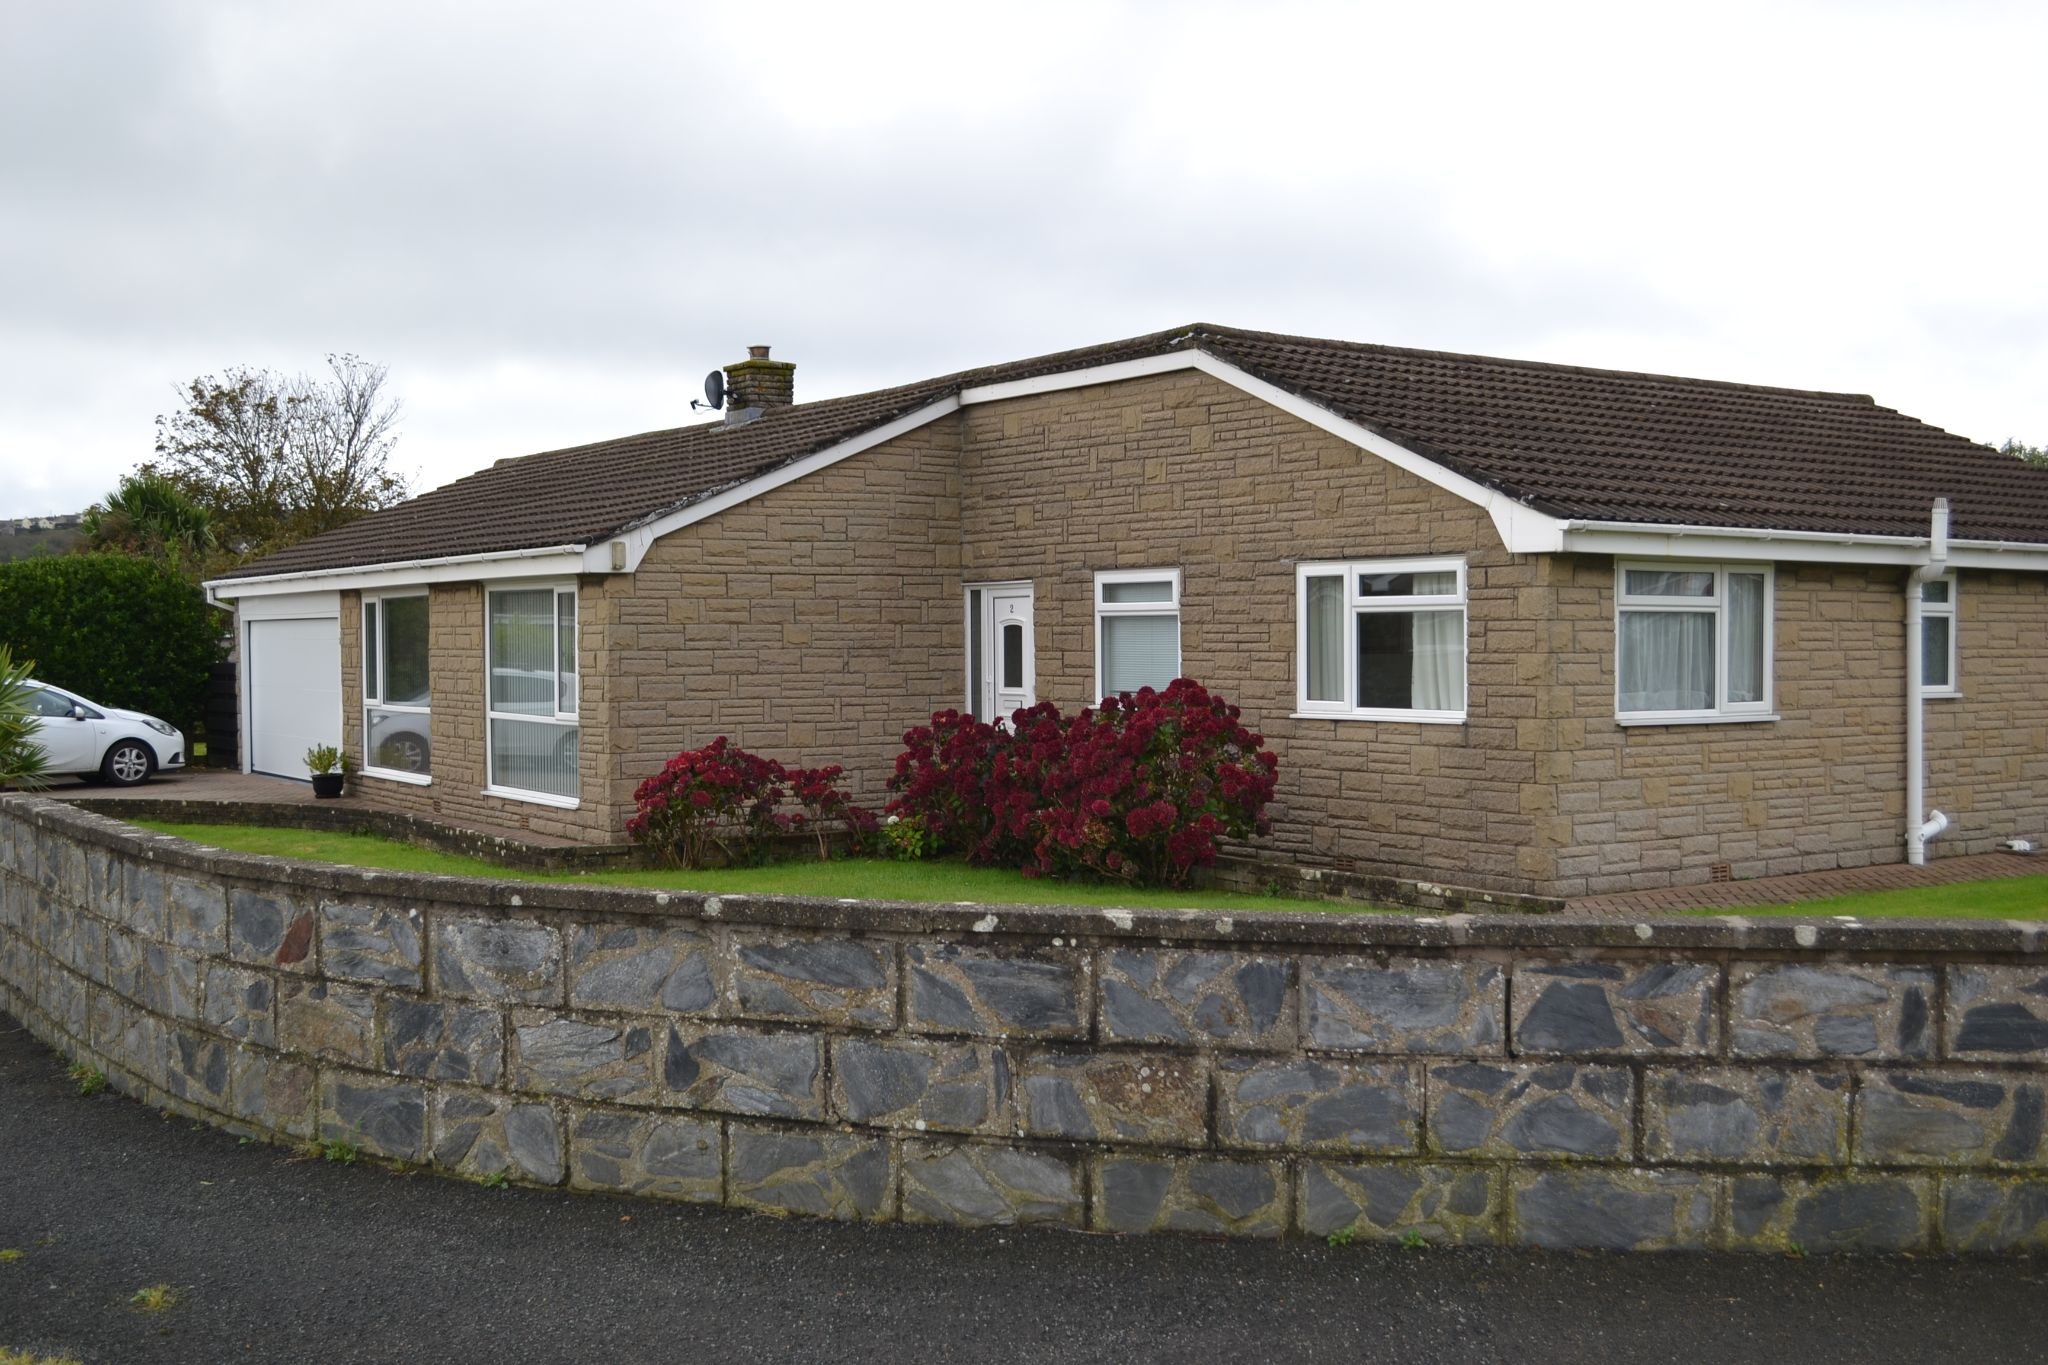 4 bedroom detached bungalow To Let in Port Erin - Photograph 1